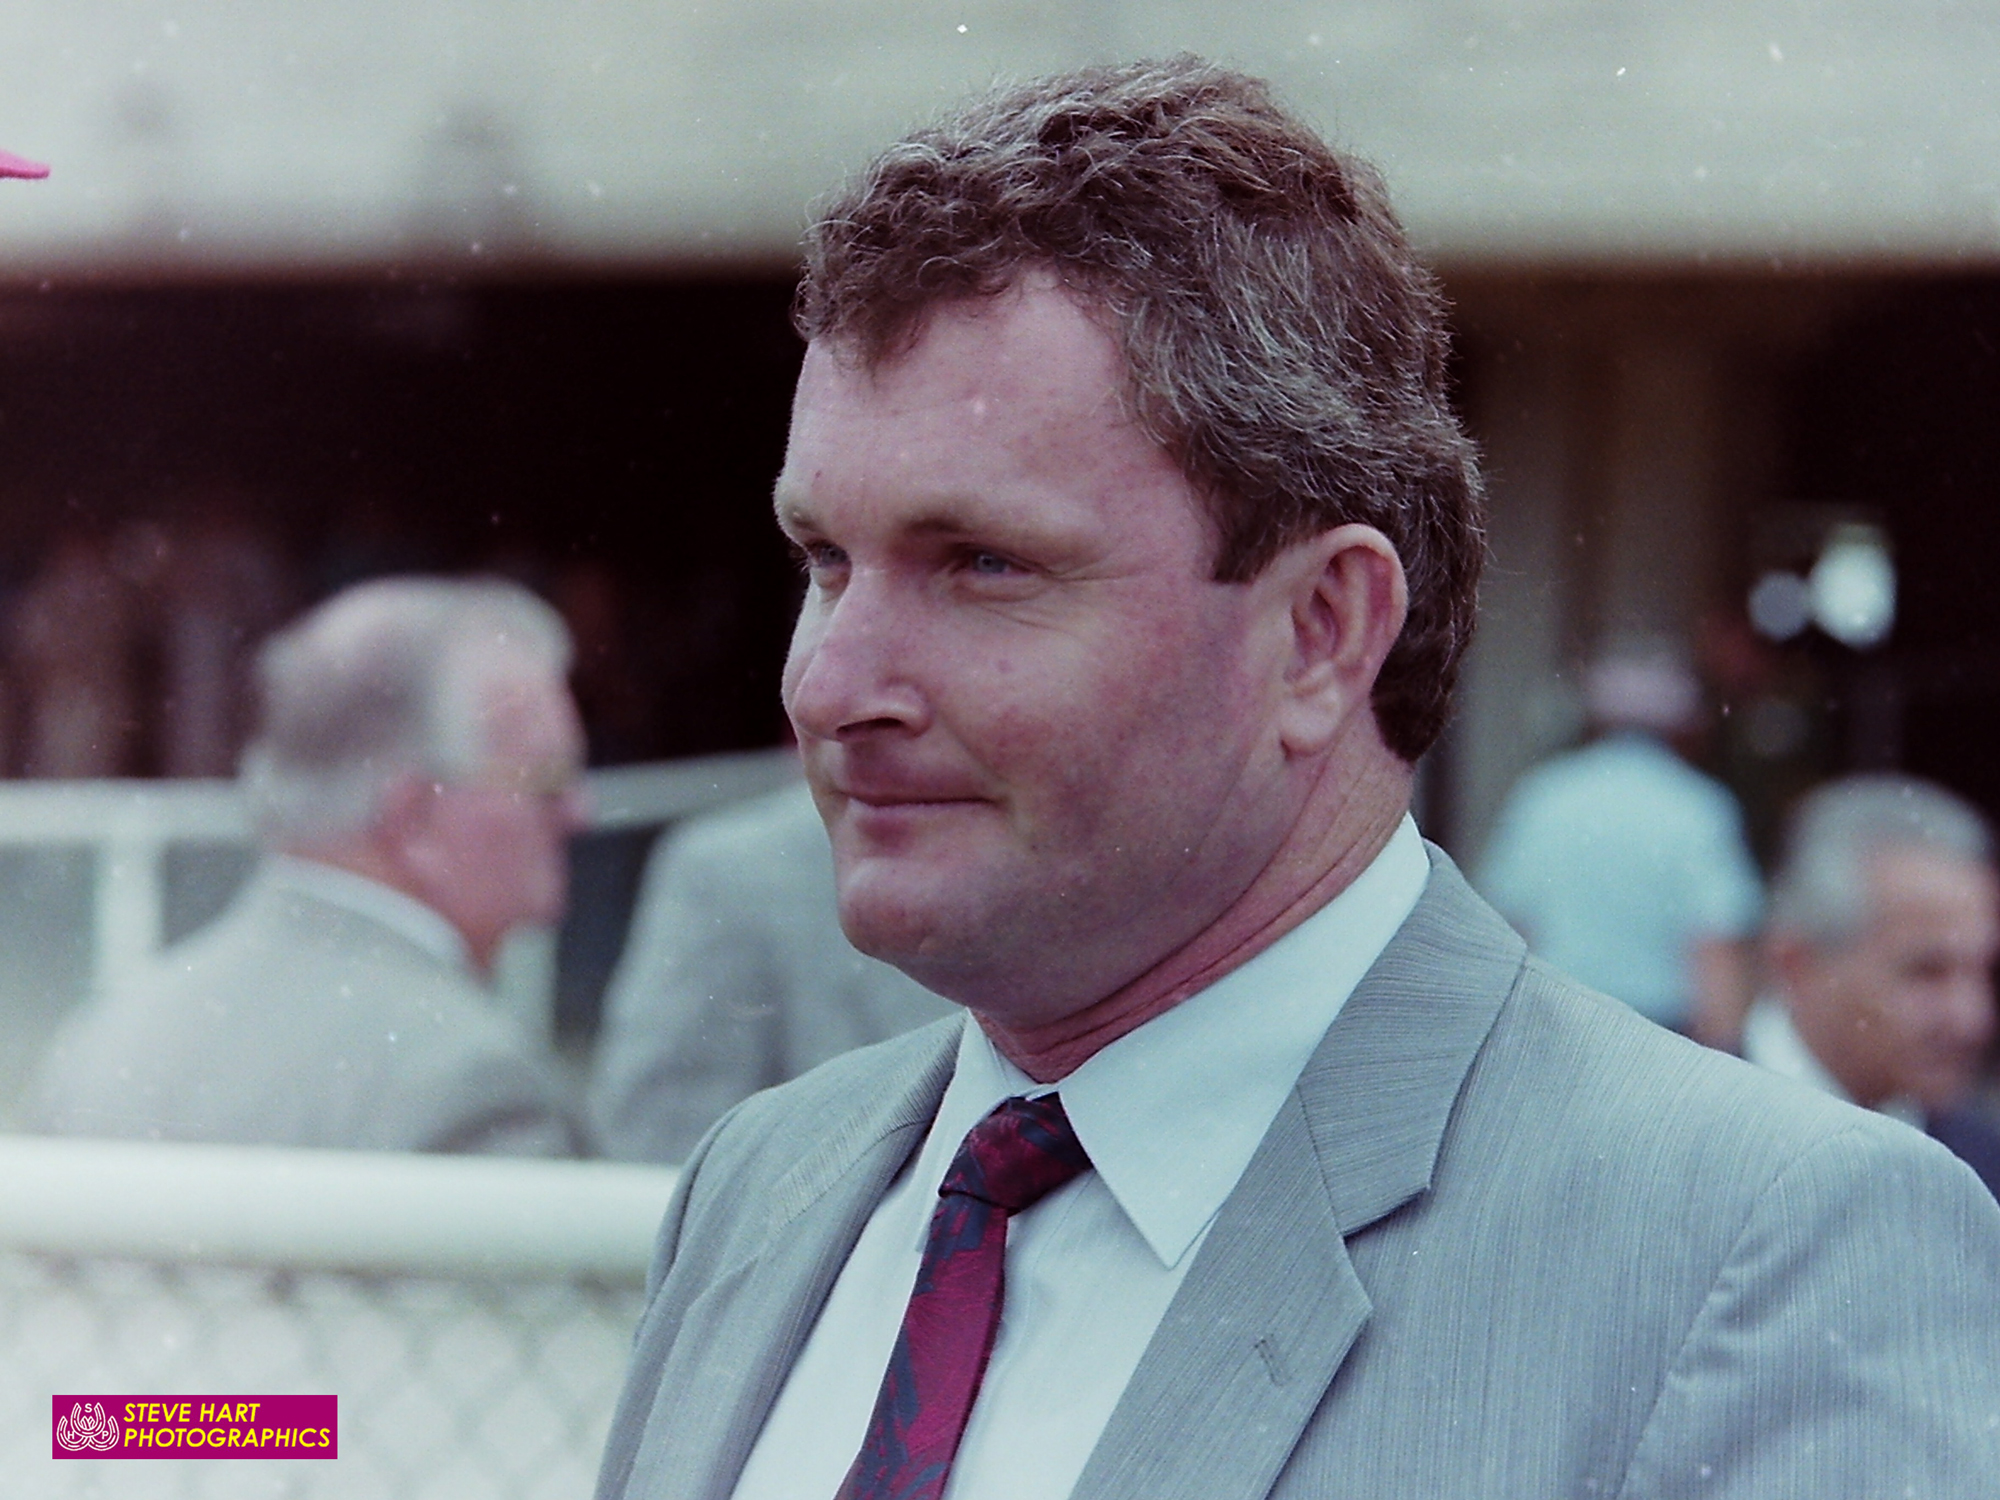 Image courtesy Steve Hart Photographics - Barry Lockwood during his training stint at Rosehill, 1993.